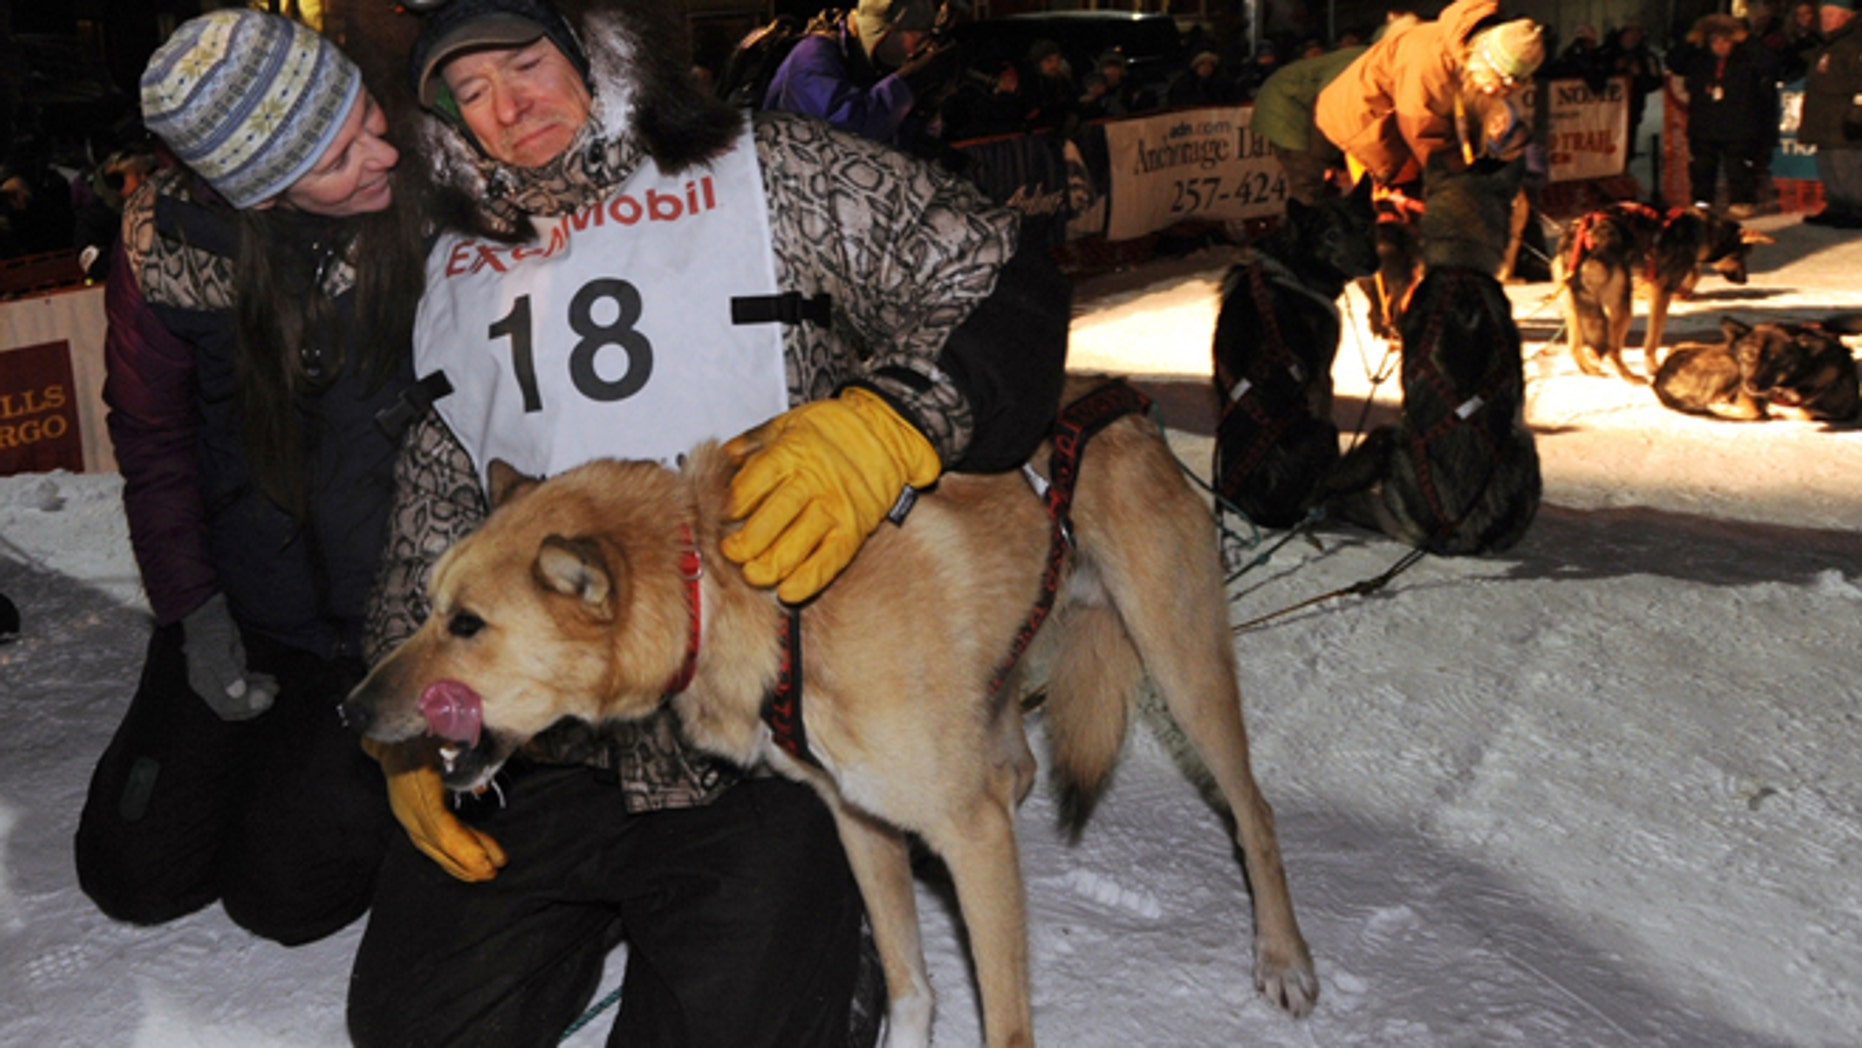 March 13: Four-time Iditarod champion Jeff King pats a dog after he finished third at Nome, Alaska.